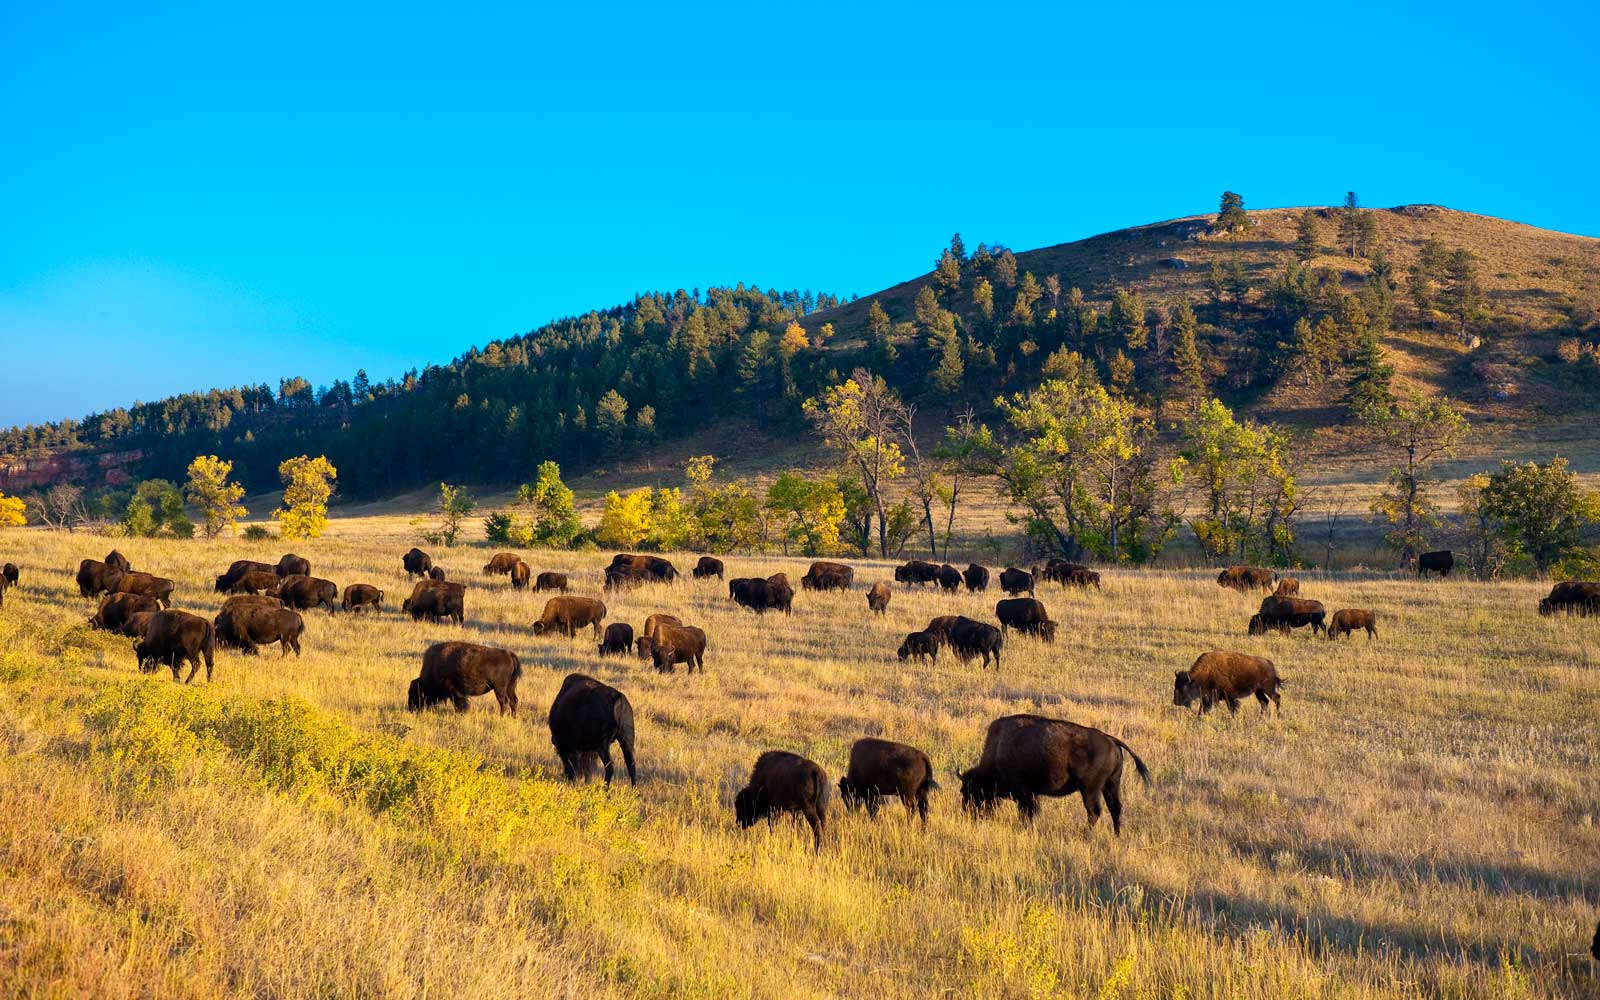 Herd of bison grazing in Custer National Park, South Dakota